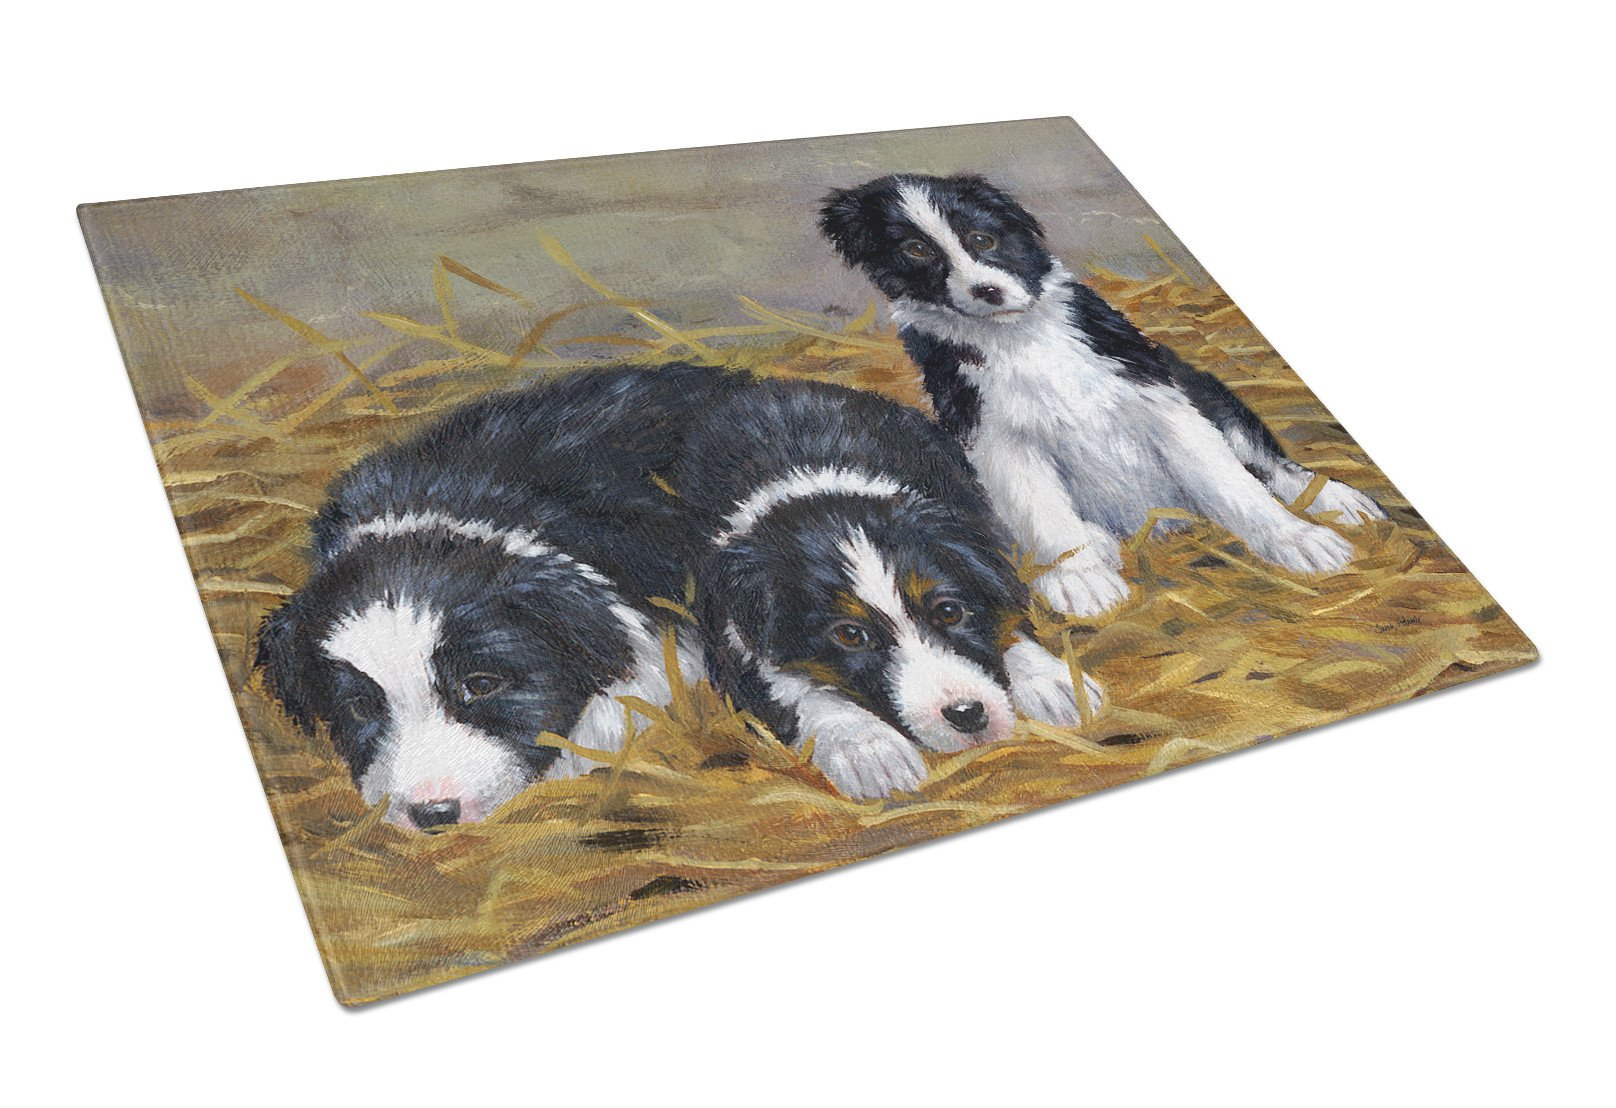 Border Collie Puppies Glass Cutting Board Large ASA2196LCB by Caroline's Treasures